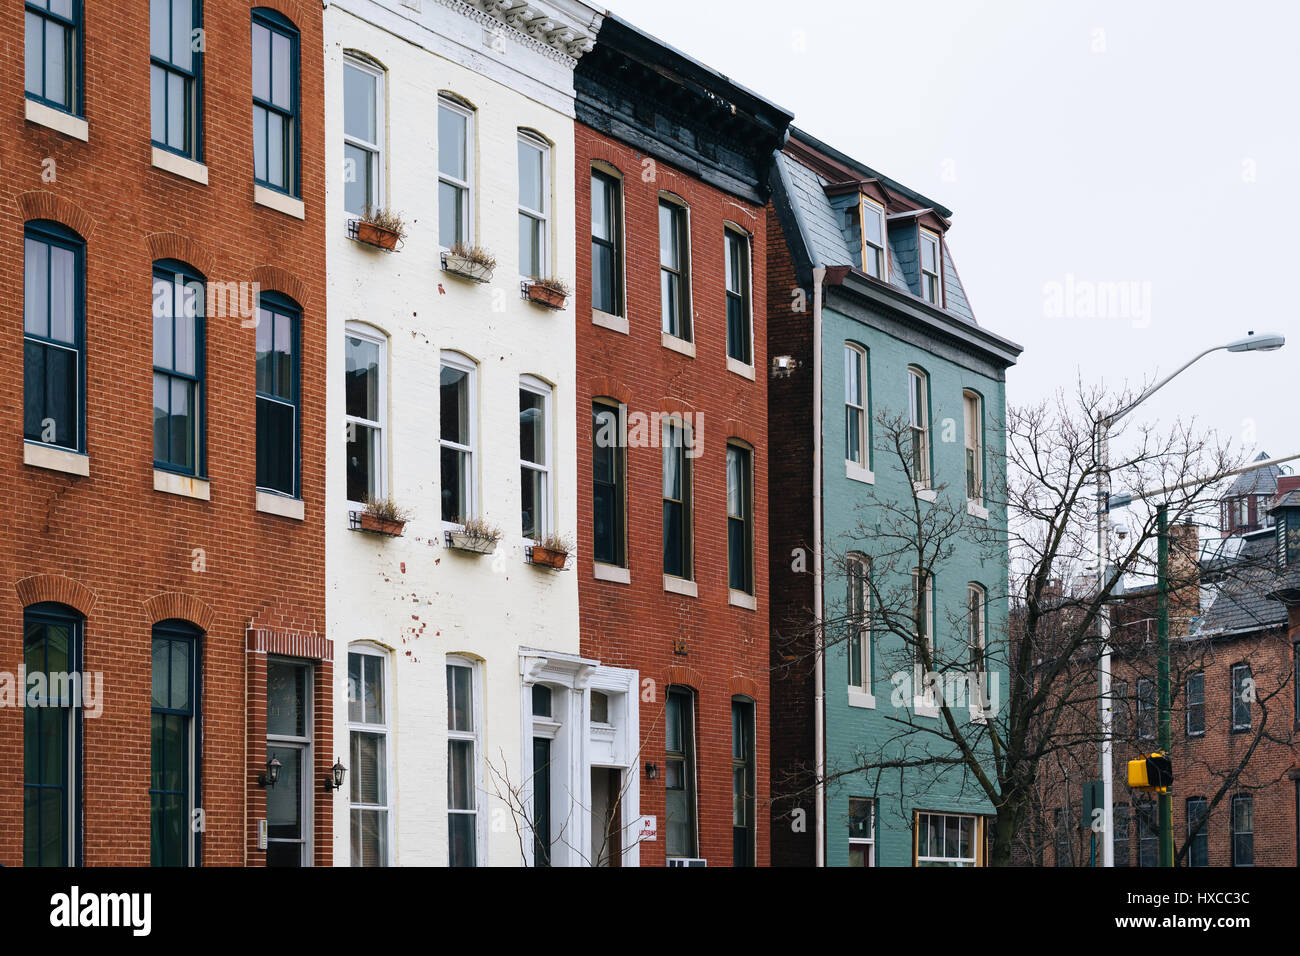 Brick Row Houses In Mount Vernon, Baltimore, Maryland